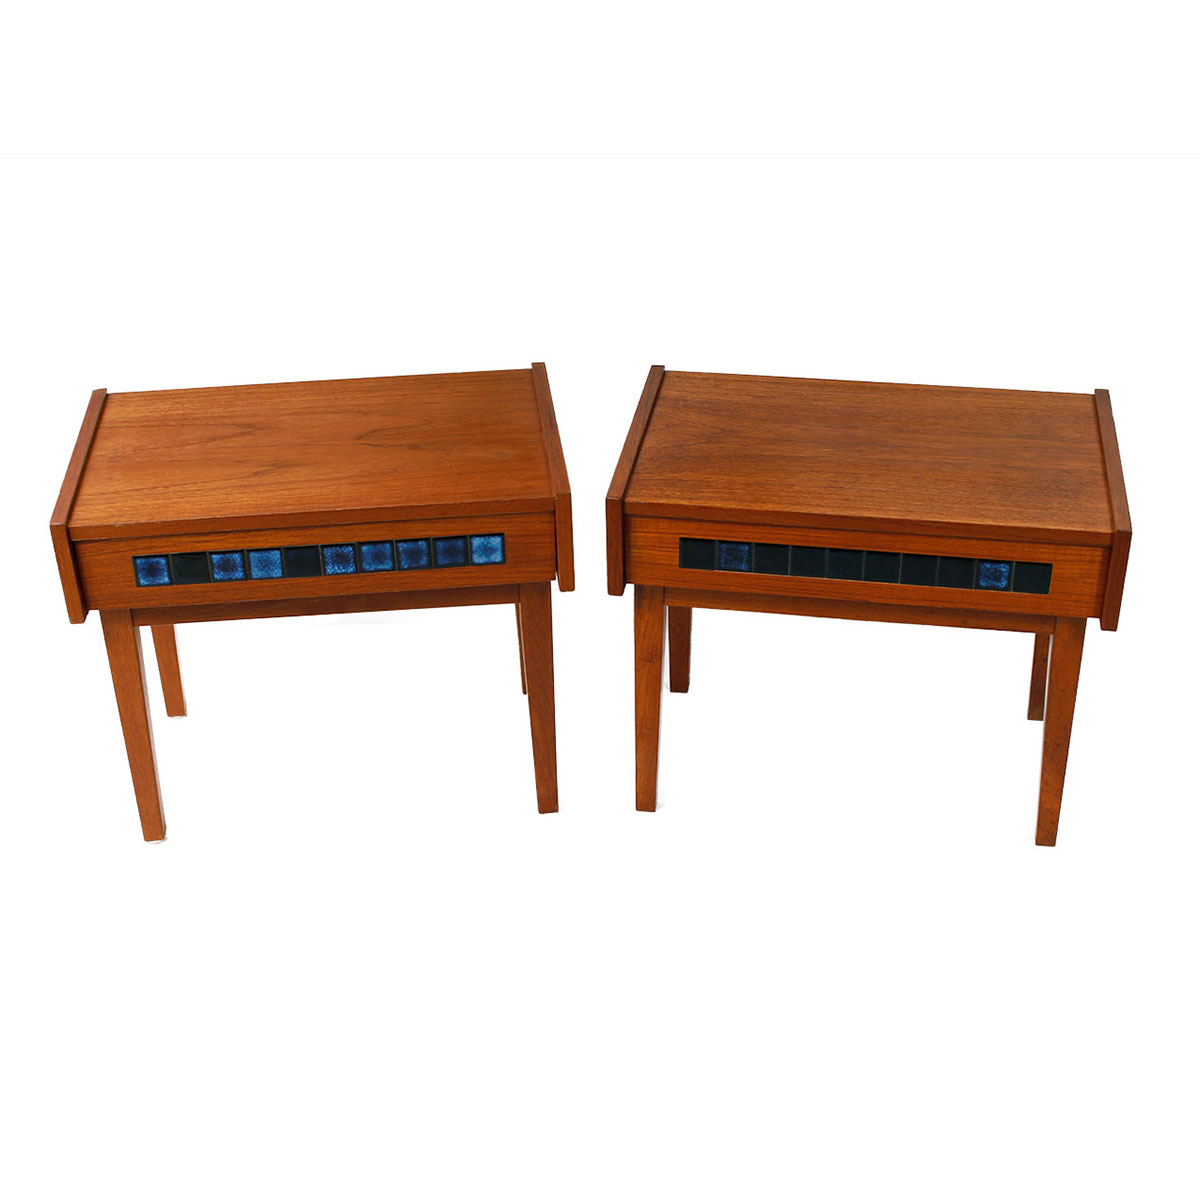 Pair of Petite Danish Teak & Tile Nightstands